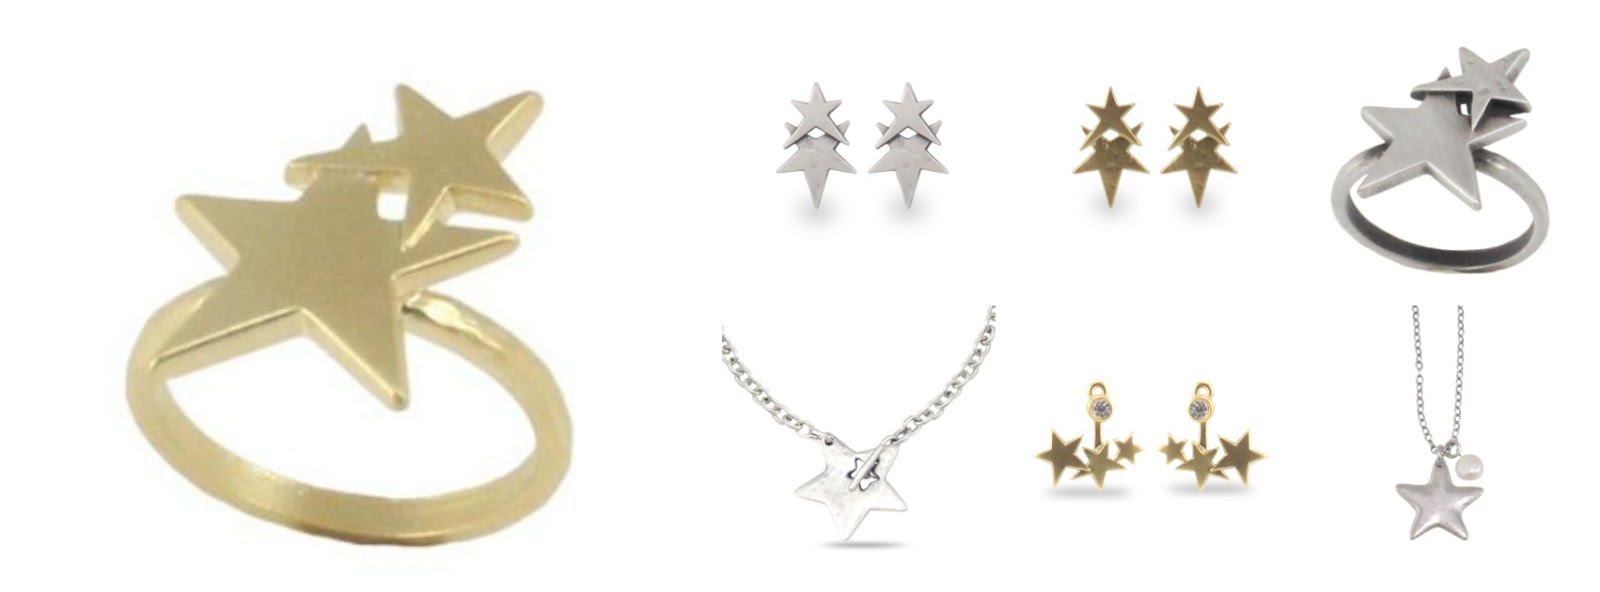 Danon star jewellery from LizzyO http://www.lizzyo.co.uk/